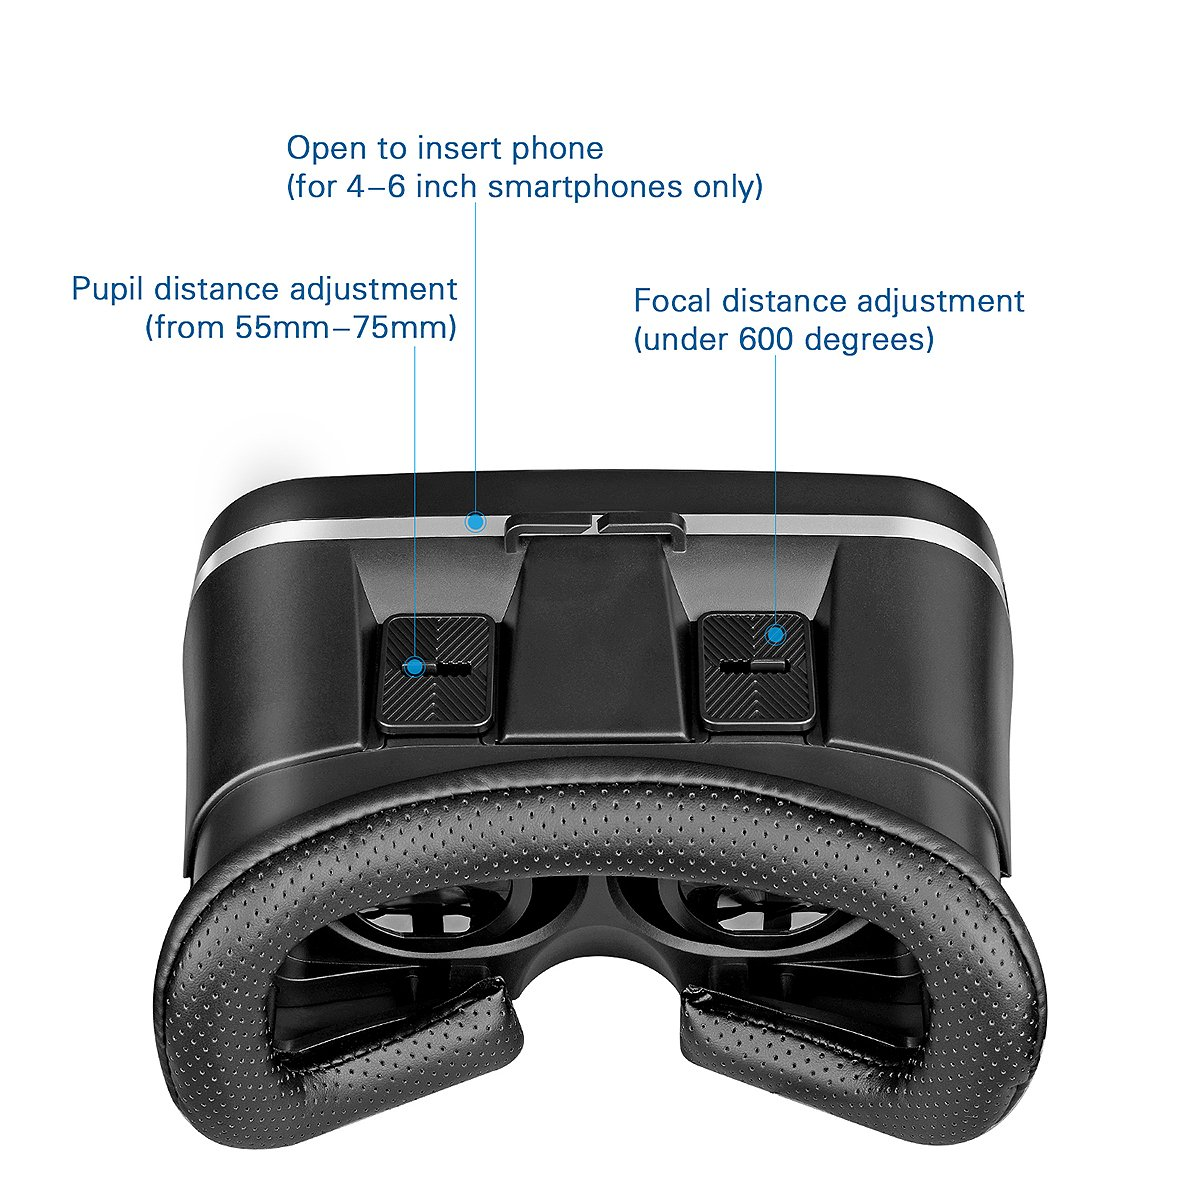 VR Headset, Canbor VR Goggles Virtual Reality Headset VR Glasses for 3D Video Movies Games for Apple iPhone, Samsung Huwei HTC More Smartphones by Canbor (Image #2)